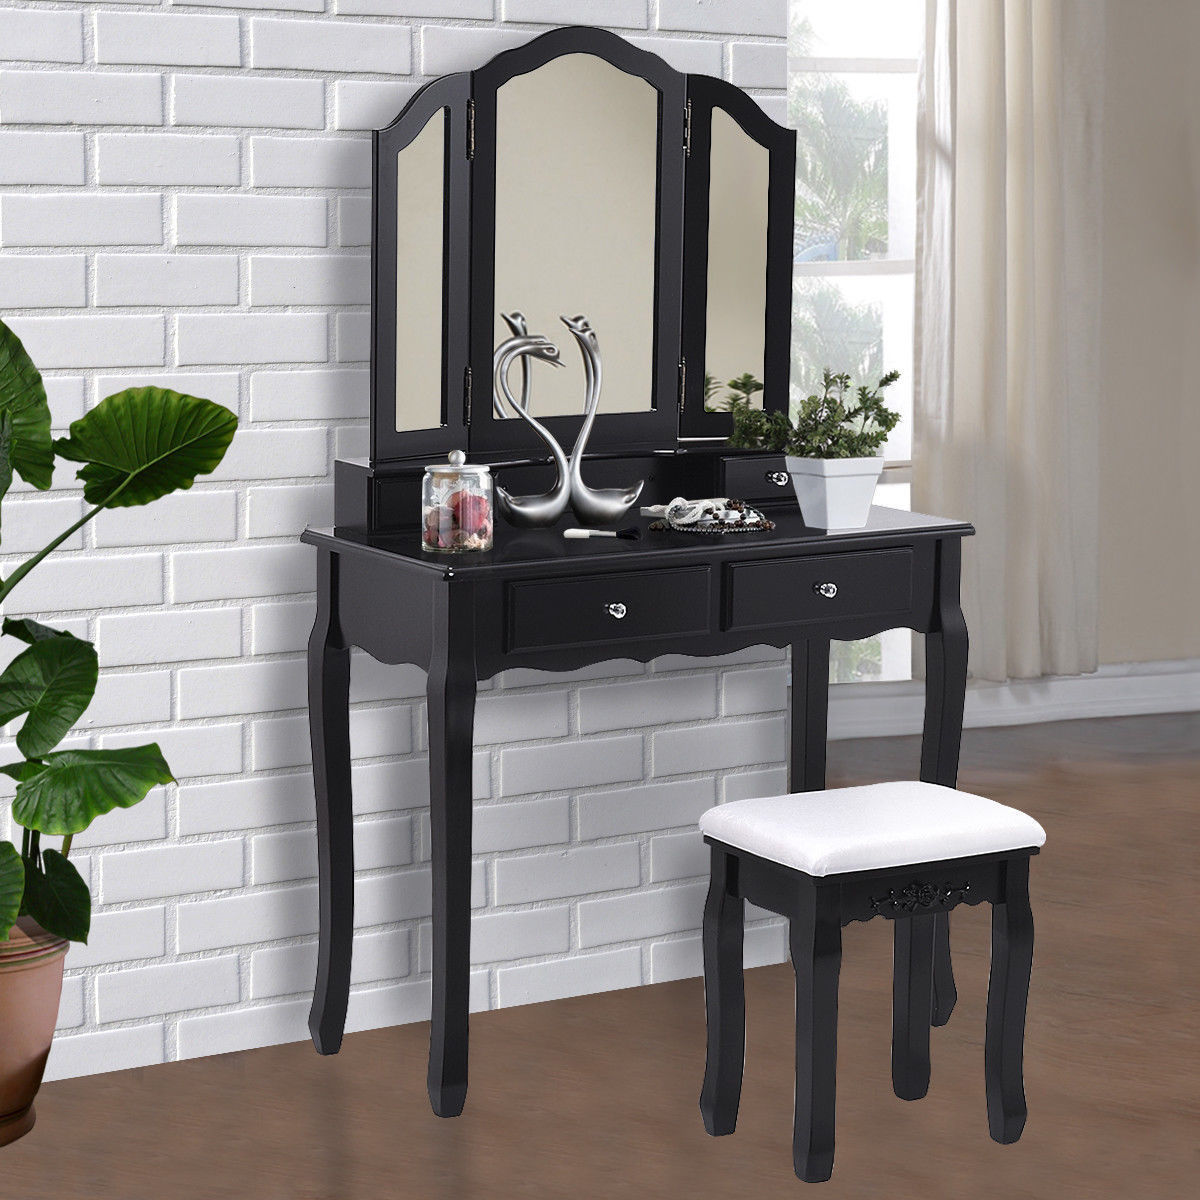 Giantex Black Tri Folding Mirror Vanity Makeup Dressing Table Stool Set Modern Home Bedroom Furniture With 4 Drawers HW55563BK Стол